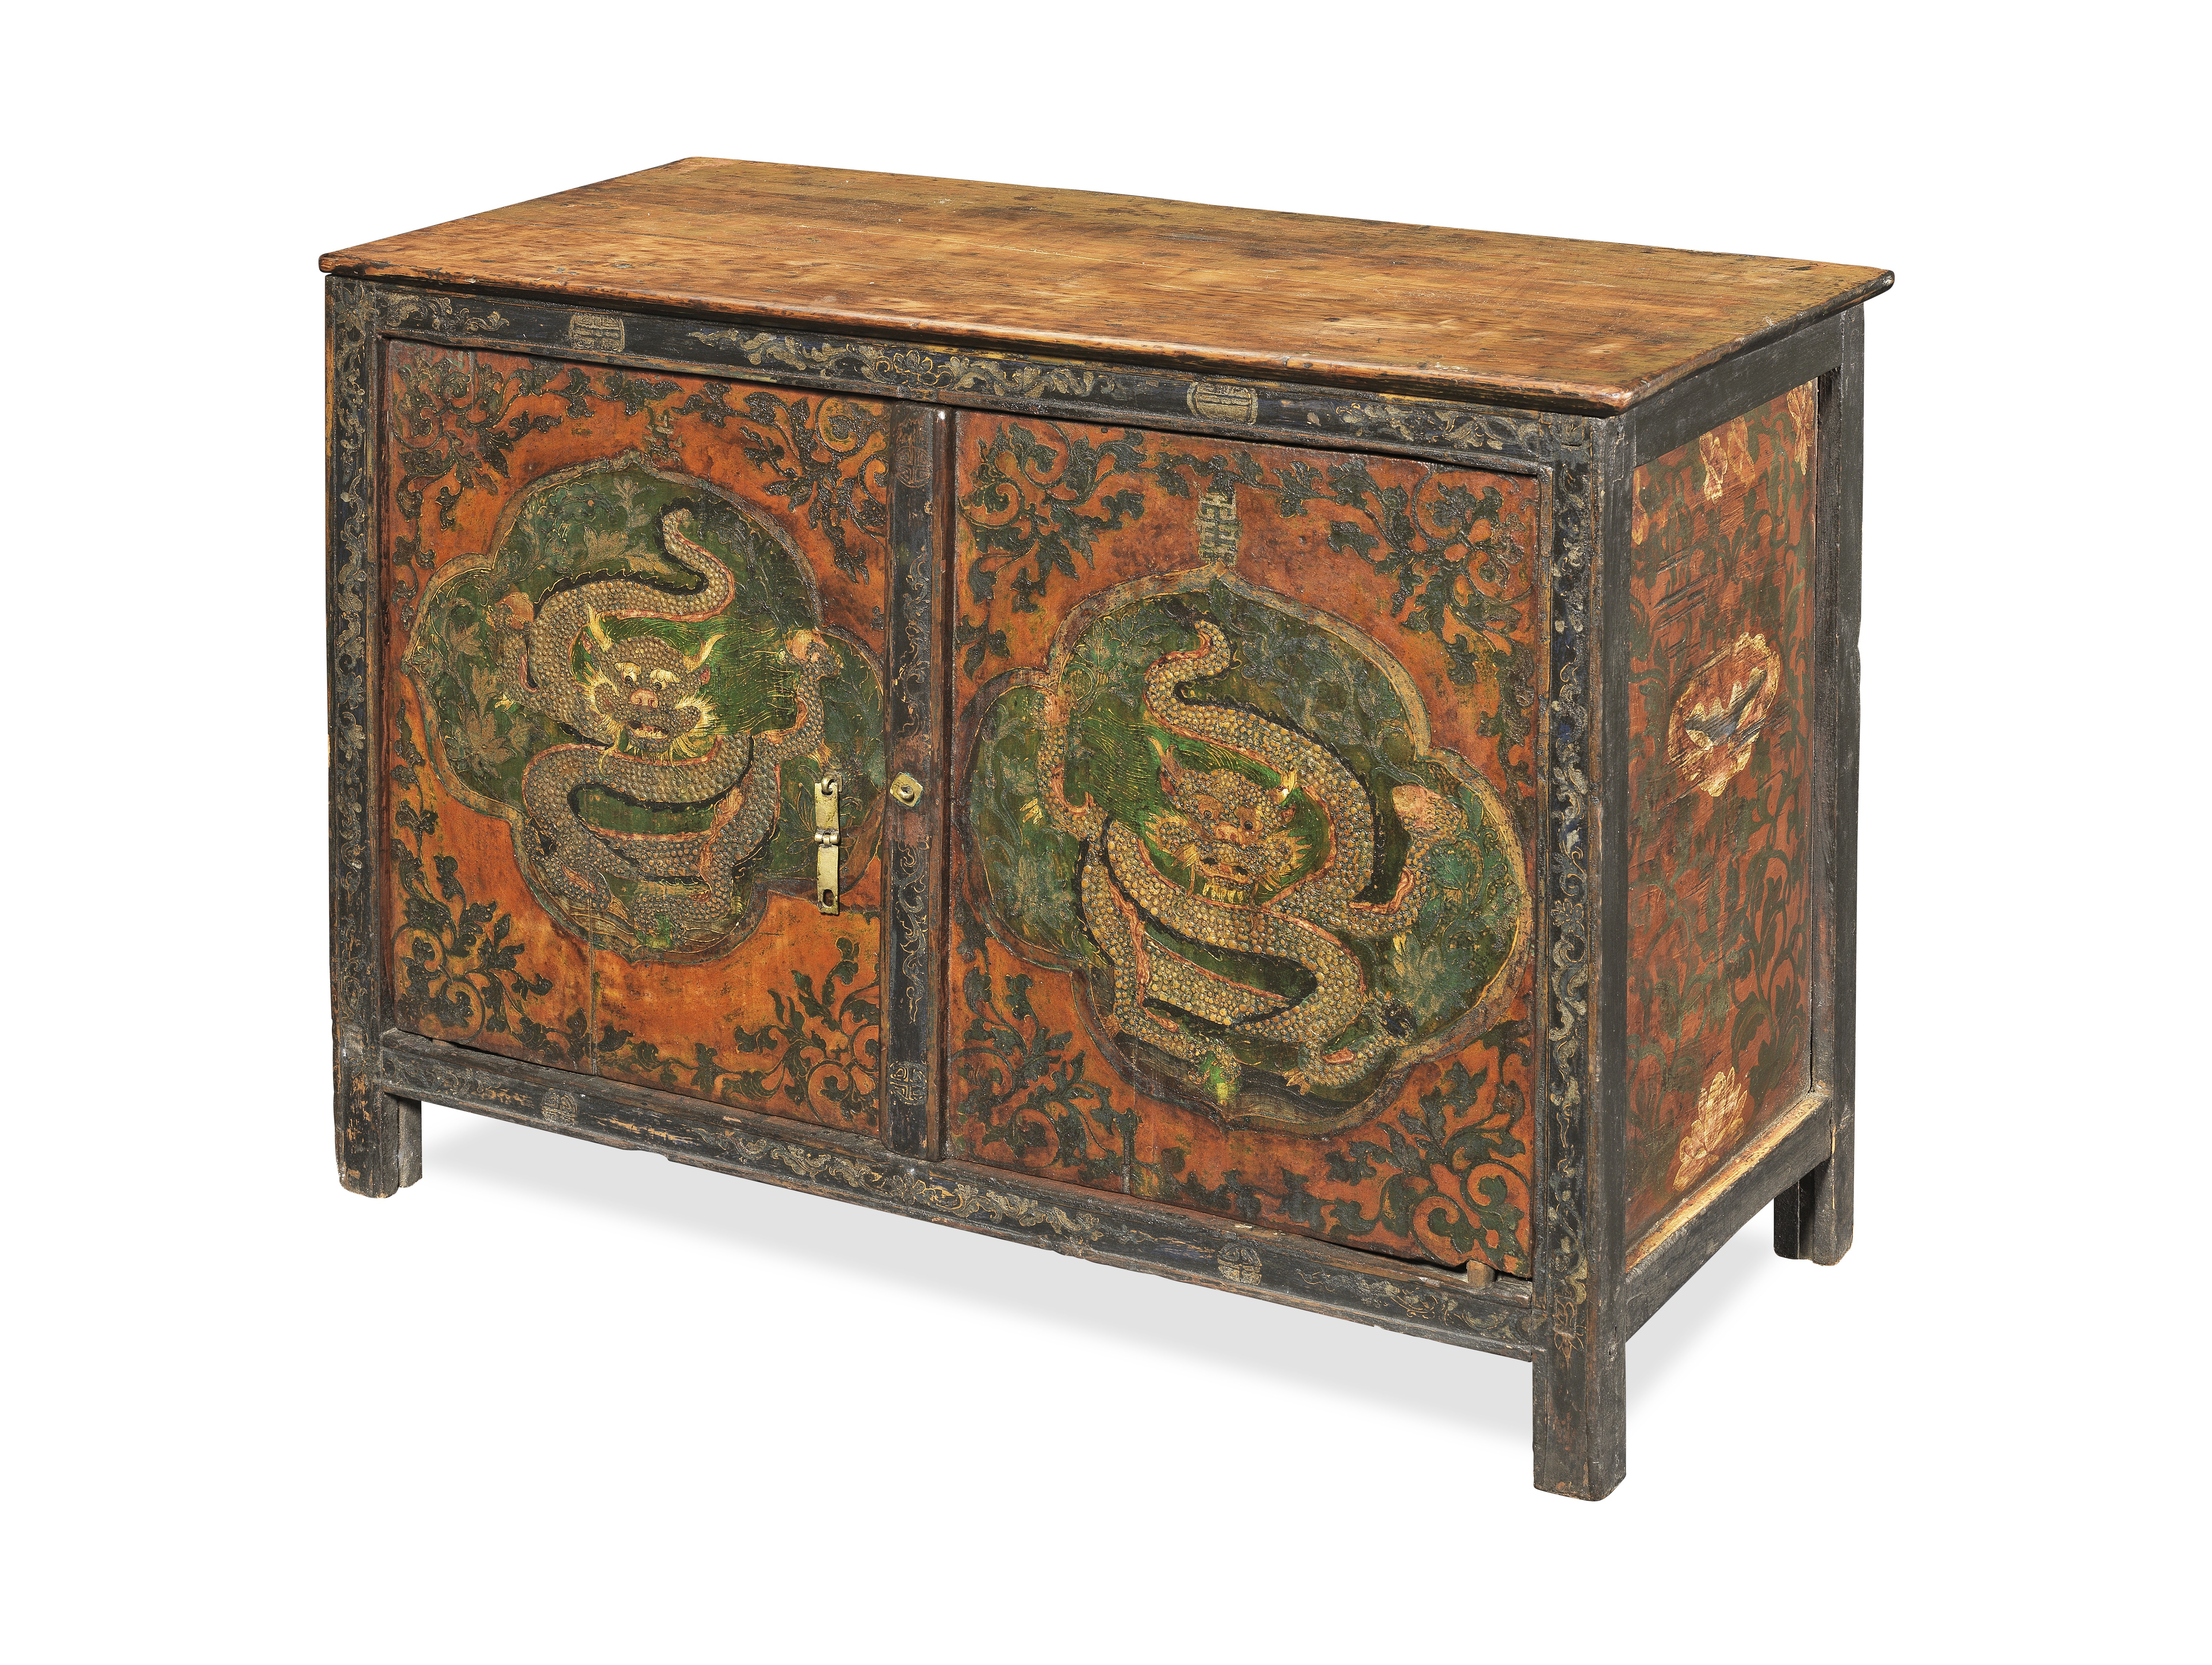 A PAINTED WOOD 'DRAGON' CABINET Tibet, 19th century